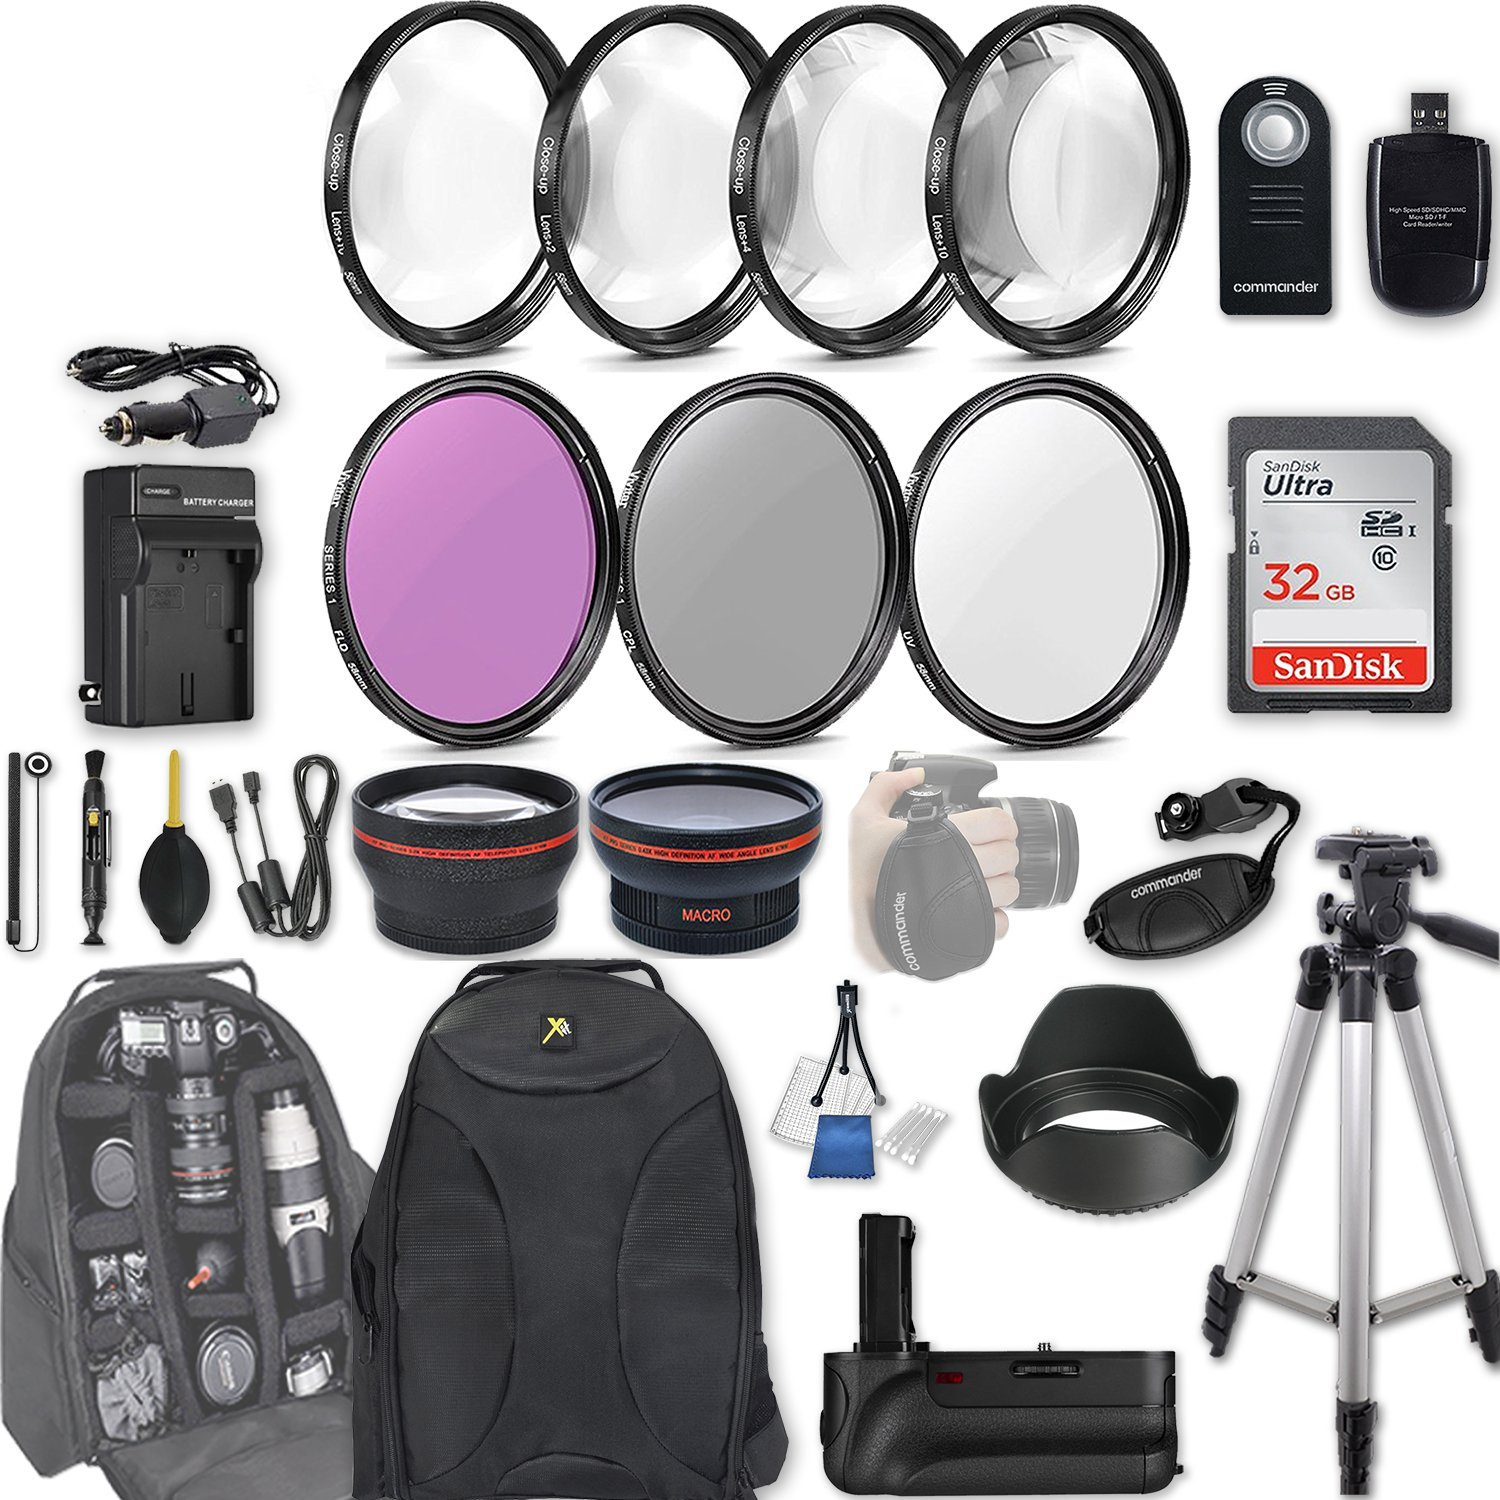 58mm 28 Pc Accessory Kit for Canon EOS T6i, T7i, 77D, T6s, 750D, 800D, 760D DSLRs with 0.43x Wide Angle Lens, 2.2x Telephoto Lens, Battery Grip, 32GB SD, Filter & Macro Kits, Backpack Case, and More by 33rd Street